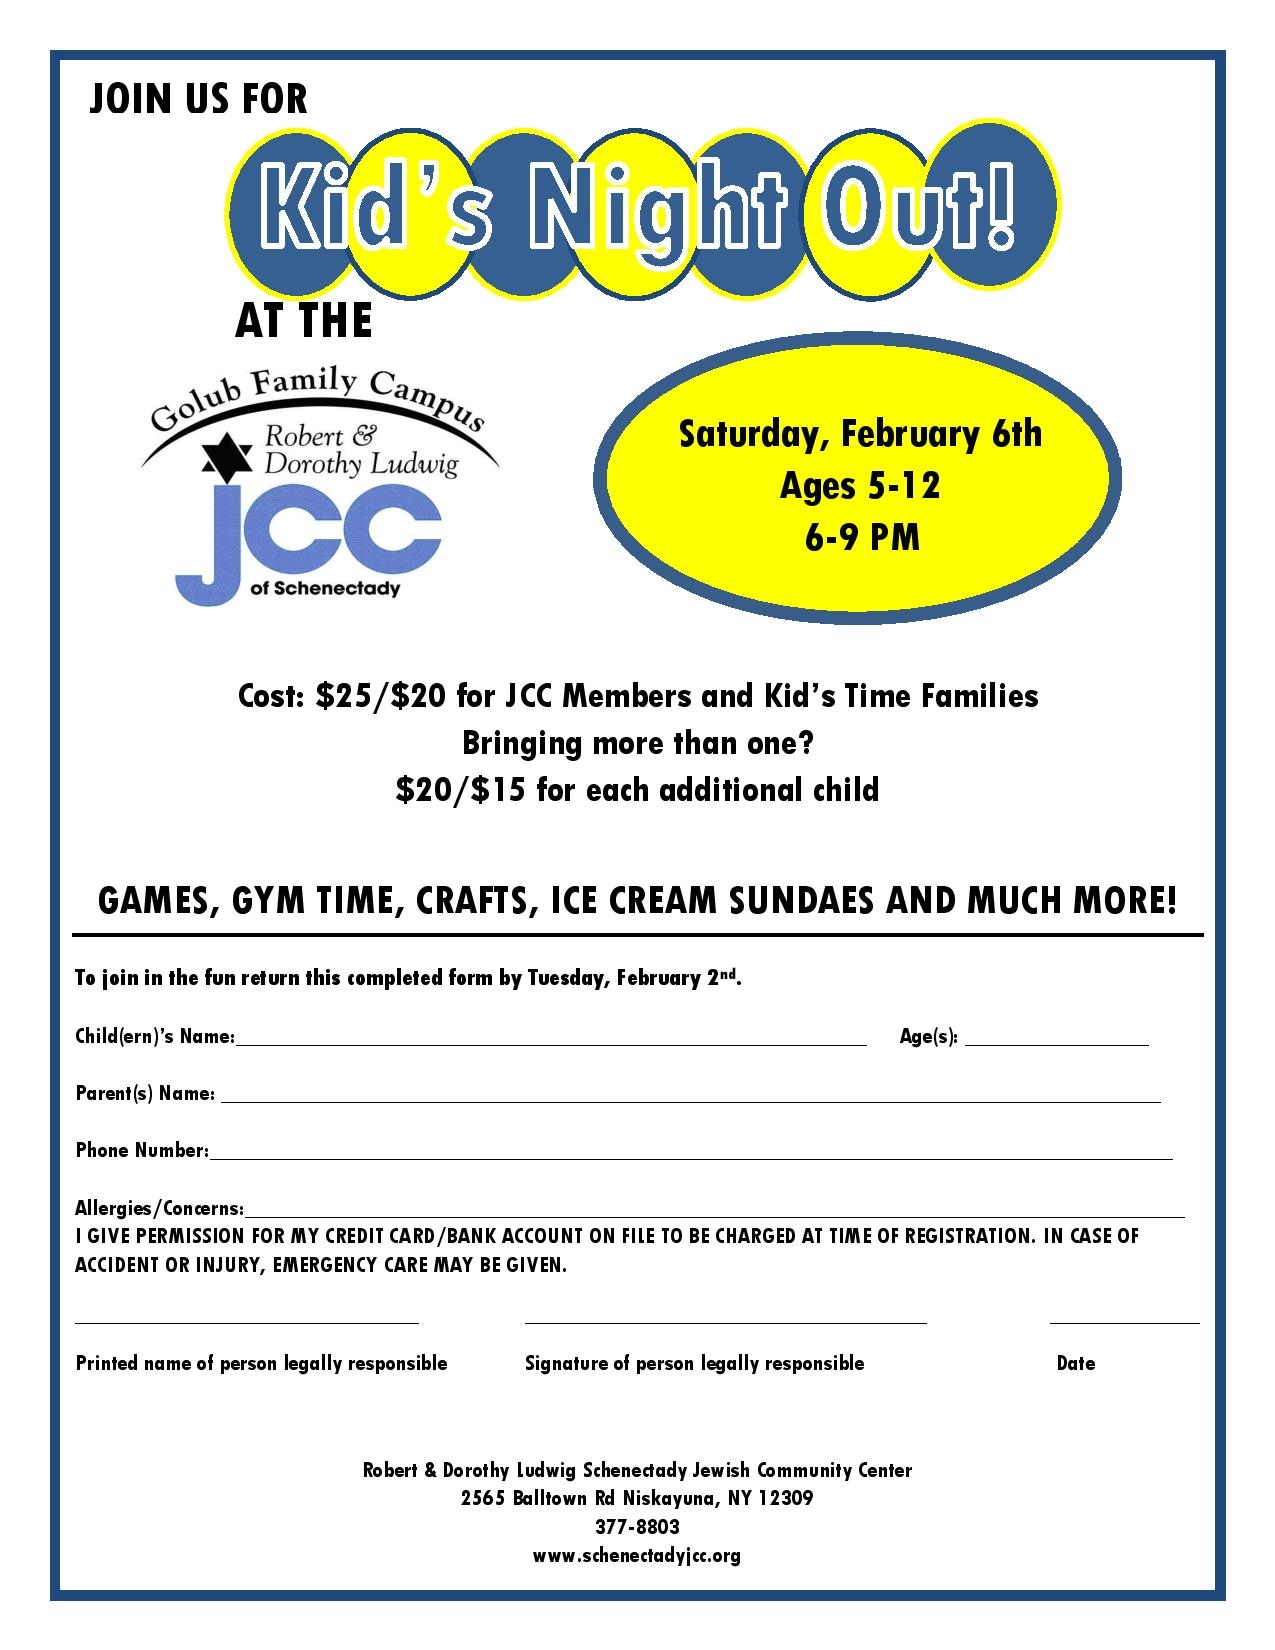 Kid's Night Out at the JCC - Schenectady Jewish Community ...